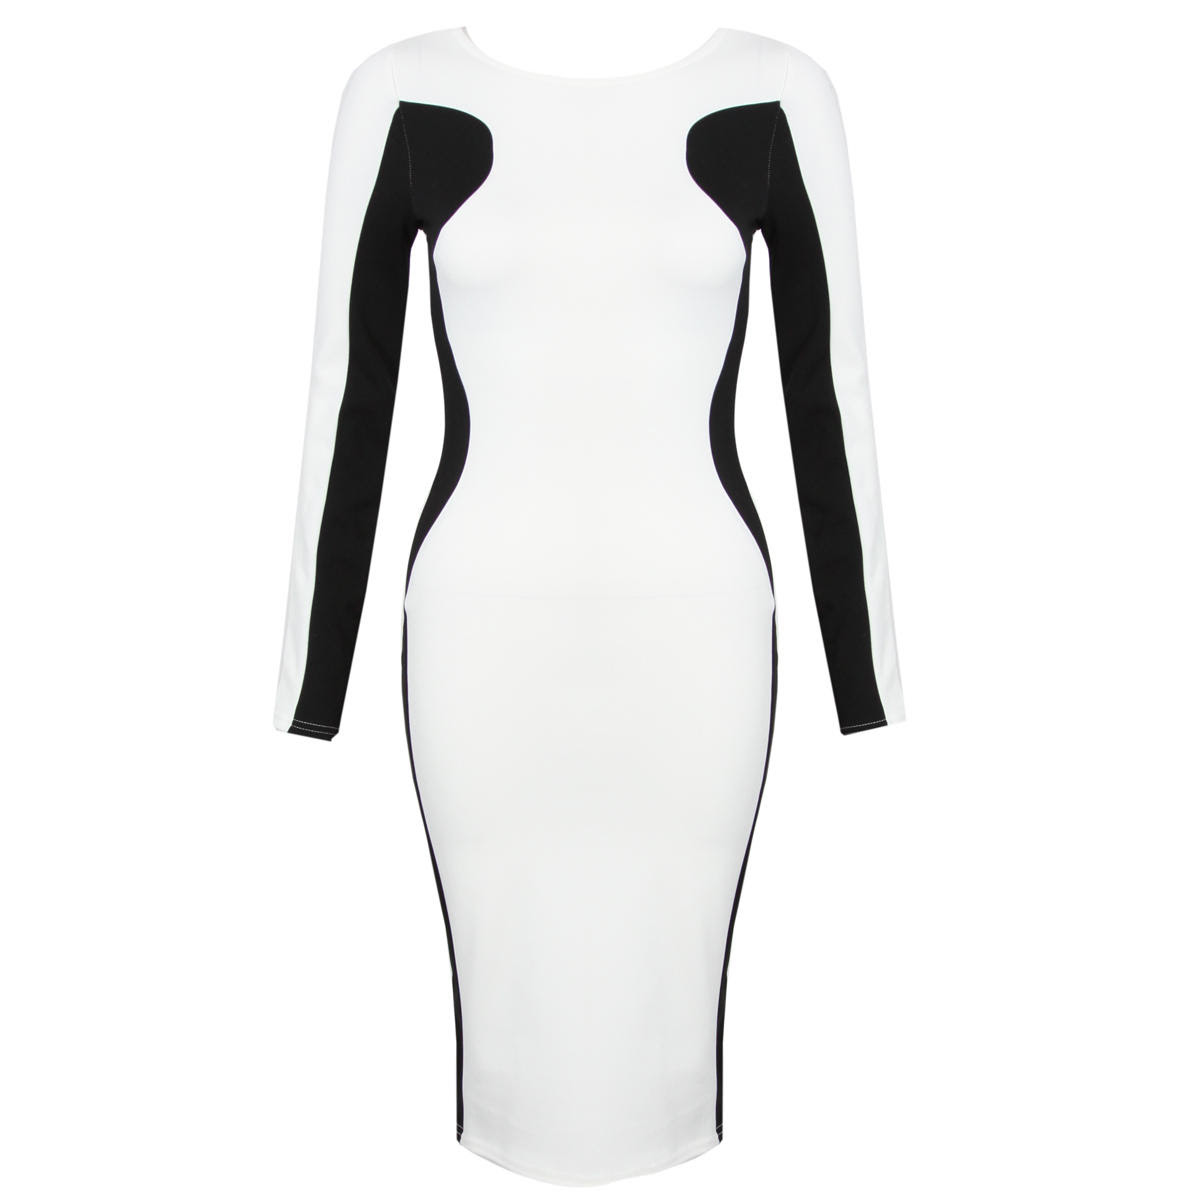 Size dress diets different bodycon types on body make you